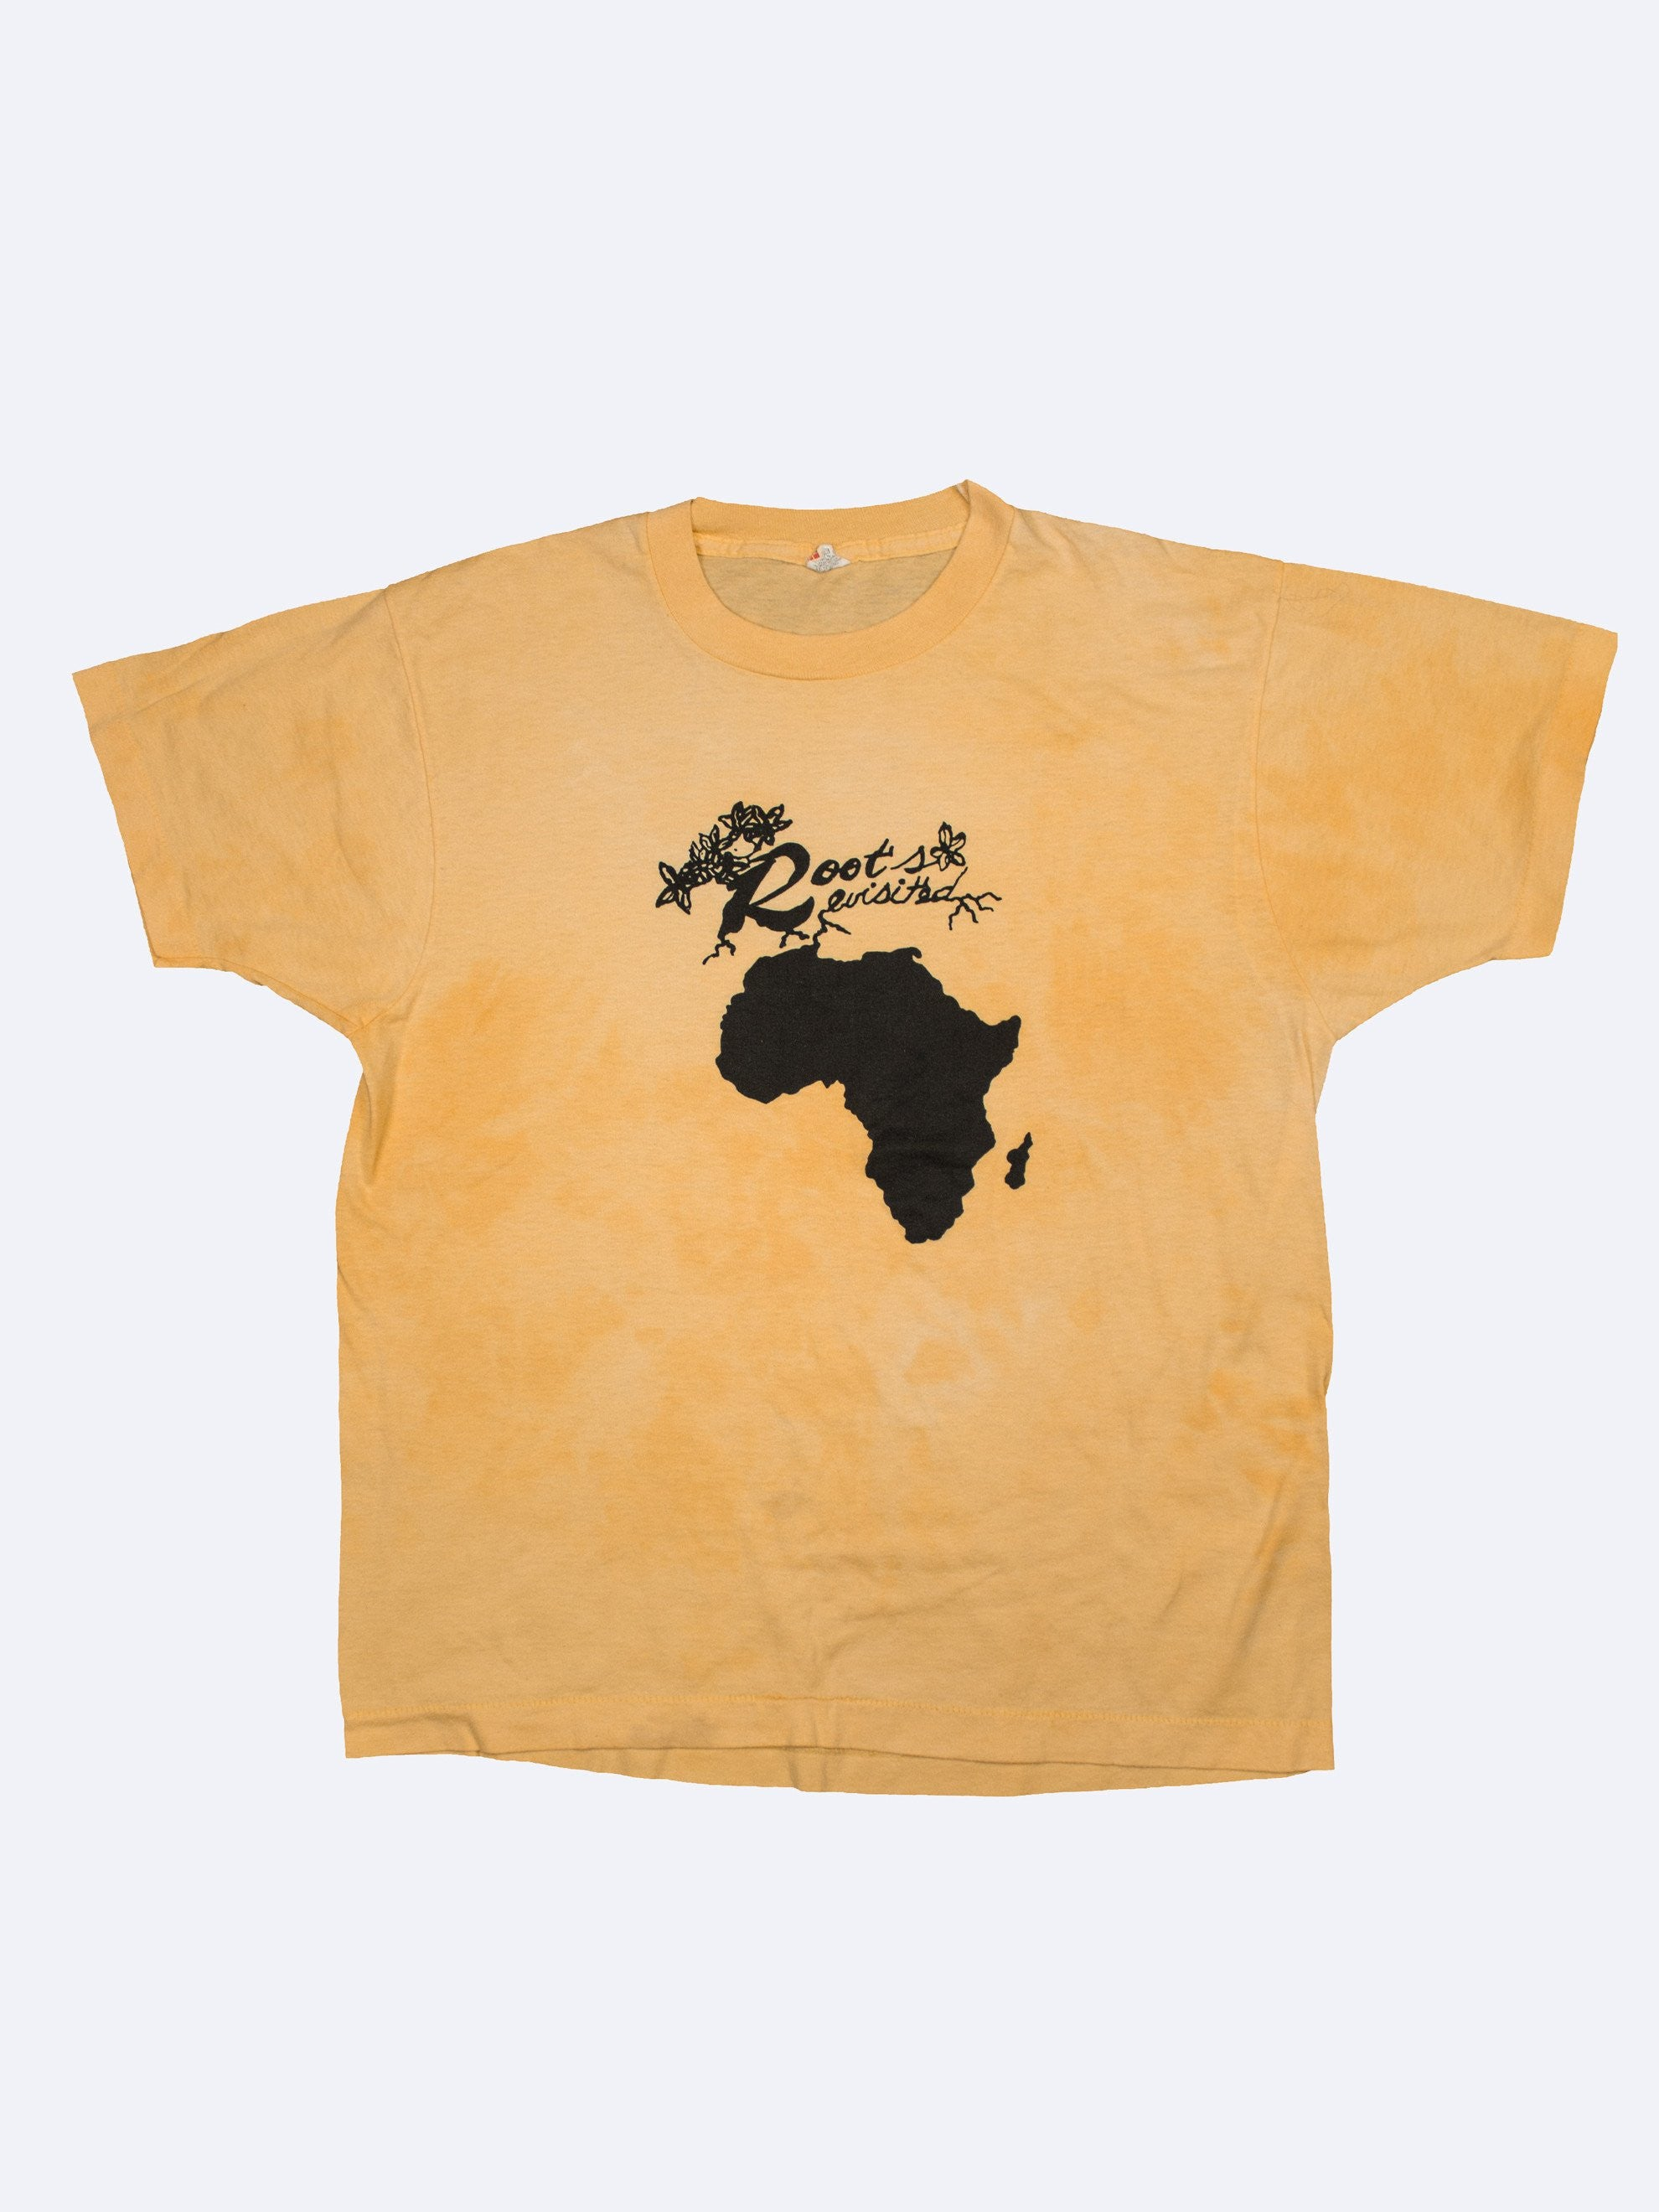 1980's Roots Revisited T-Shirt